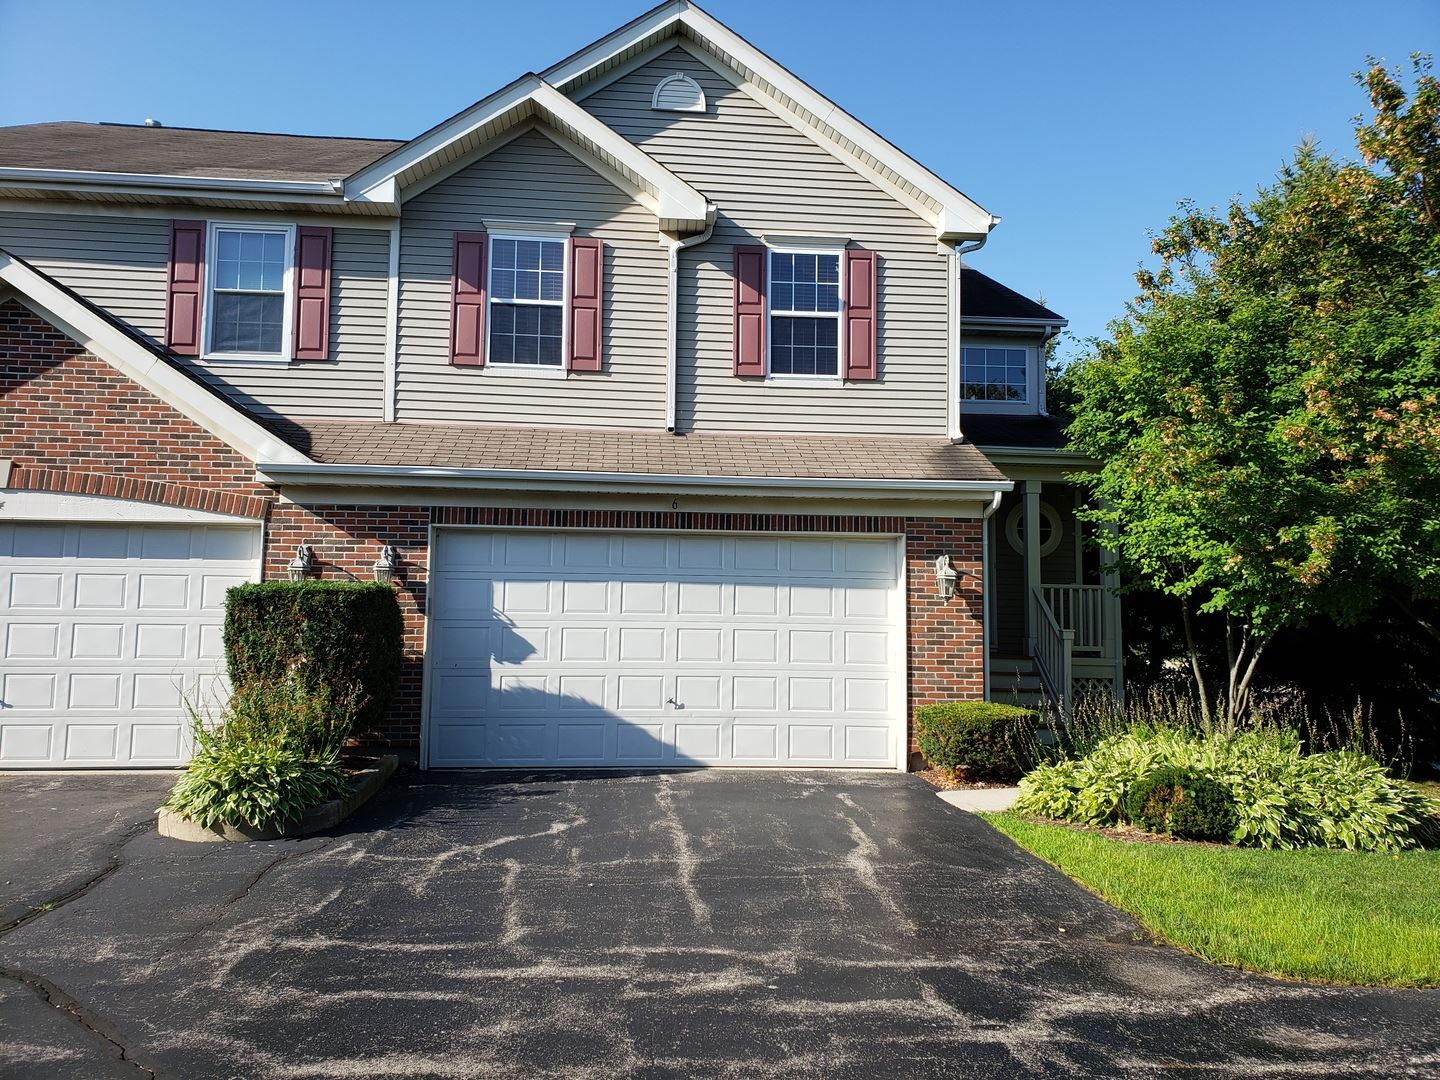 6 STONEGATE Lane #0, Streamwood, IL 60107 - #: 10473564